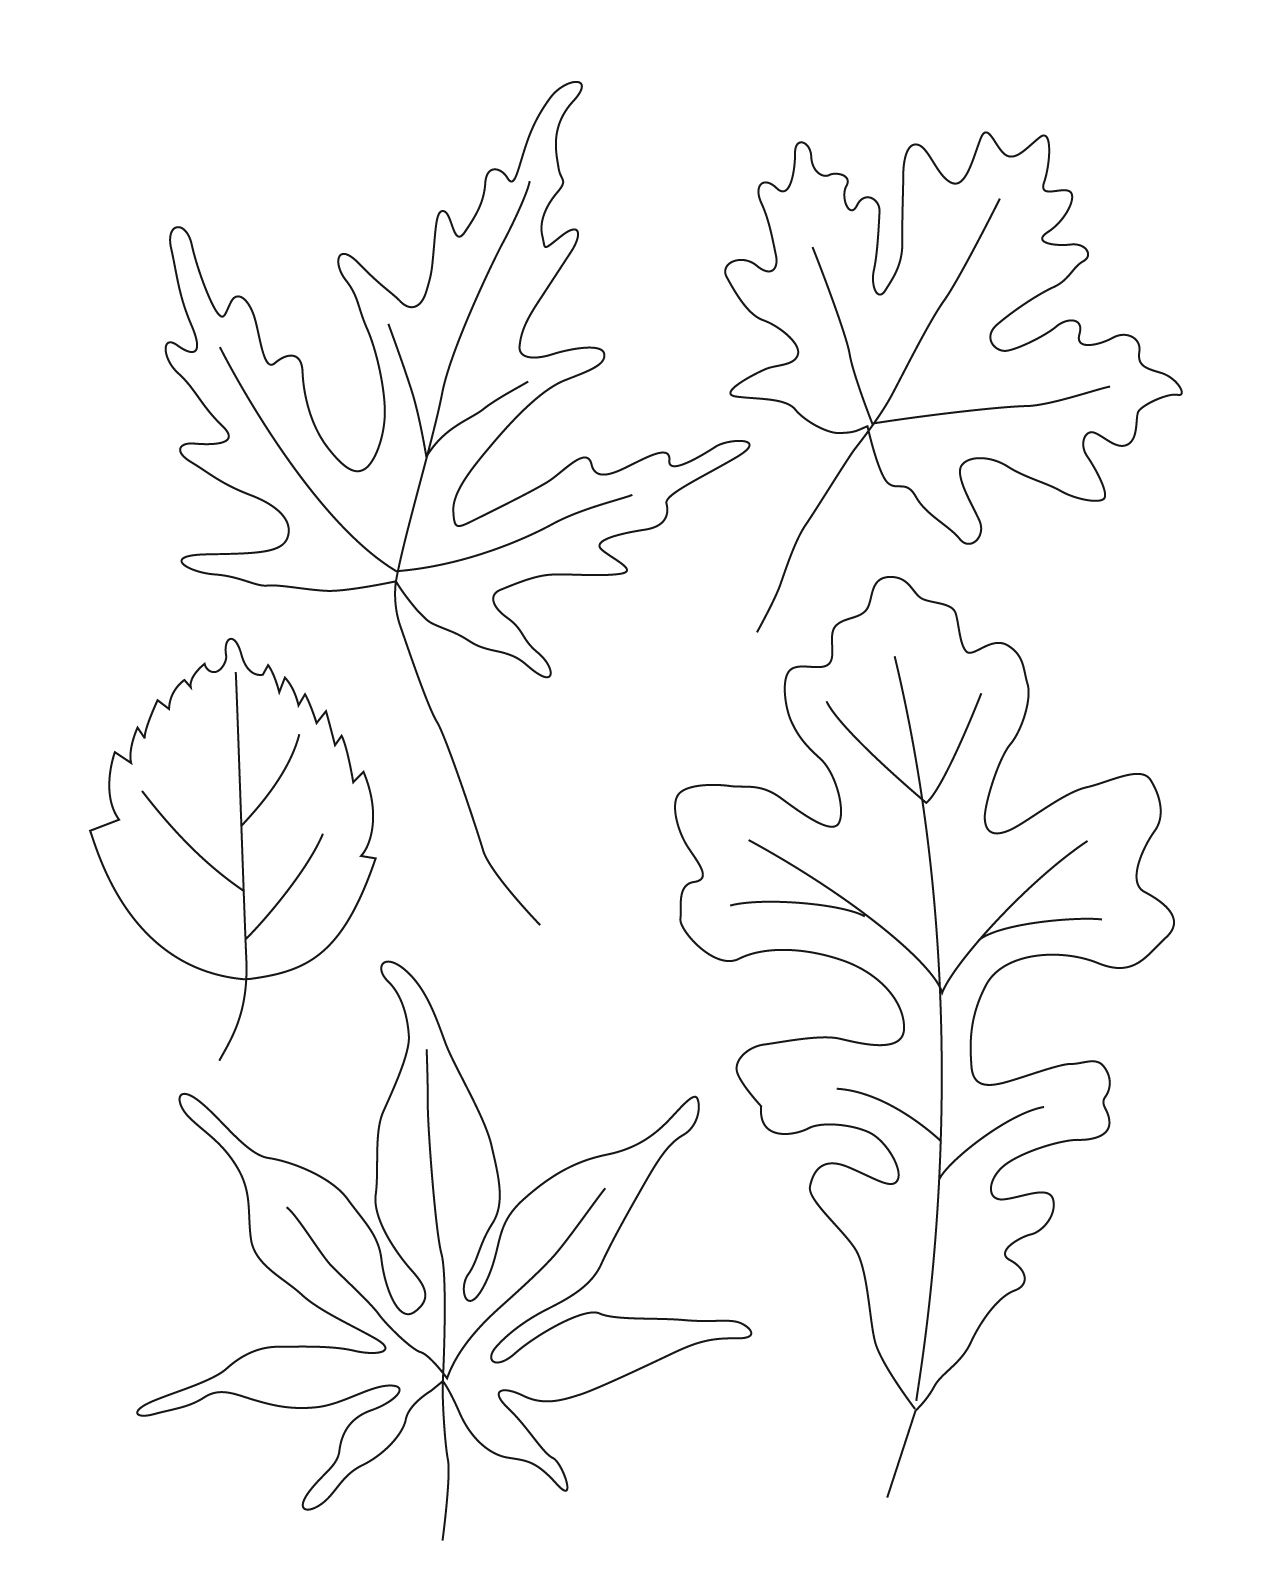 How i would draw just the outline of commonplace objects such as a pencil or a glue bottle then transferring this idea to drawing leaves